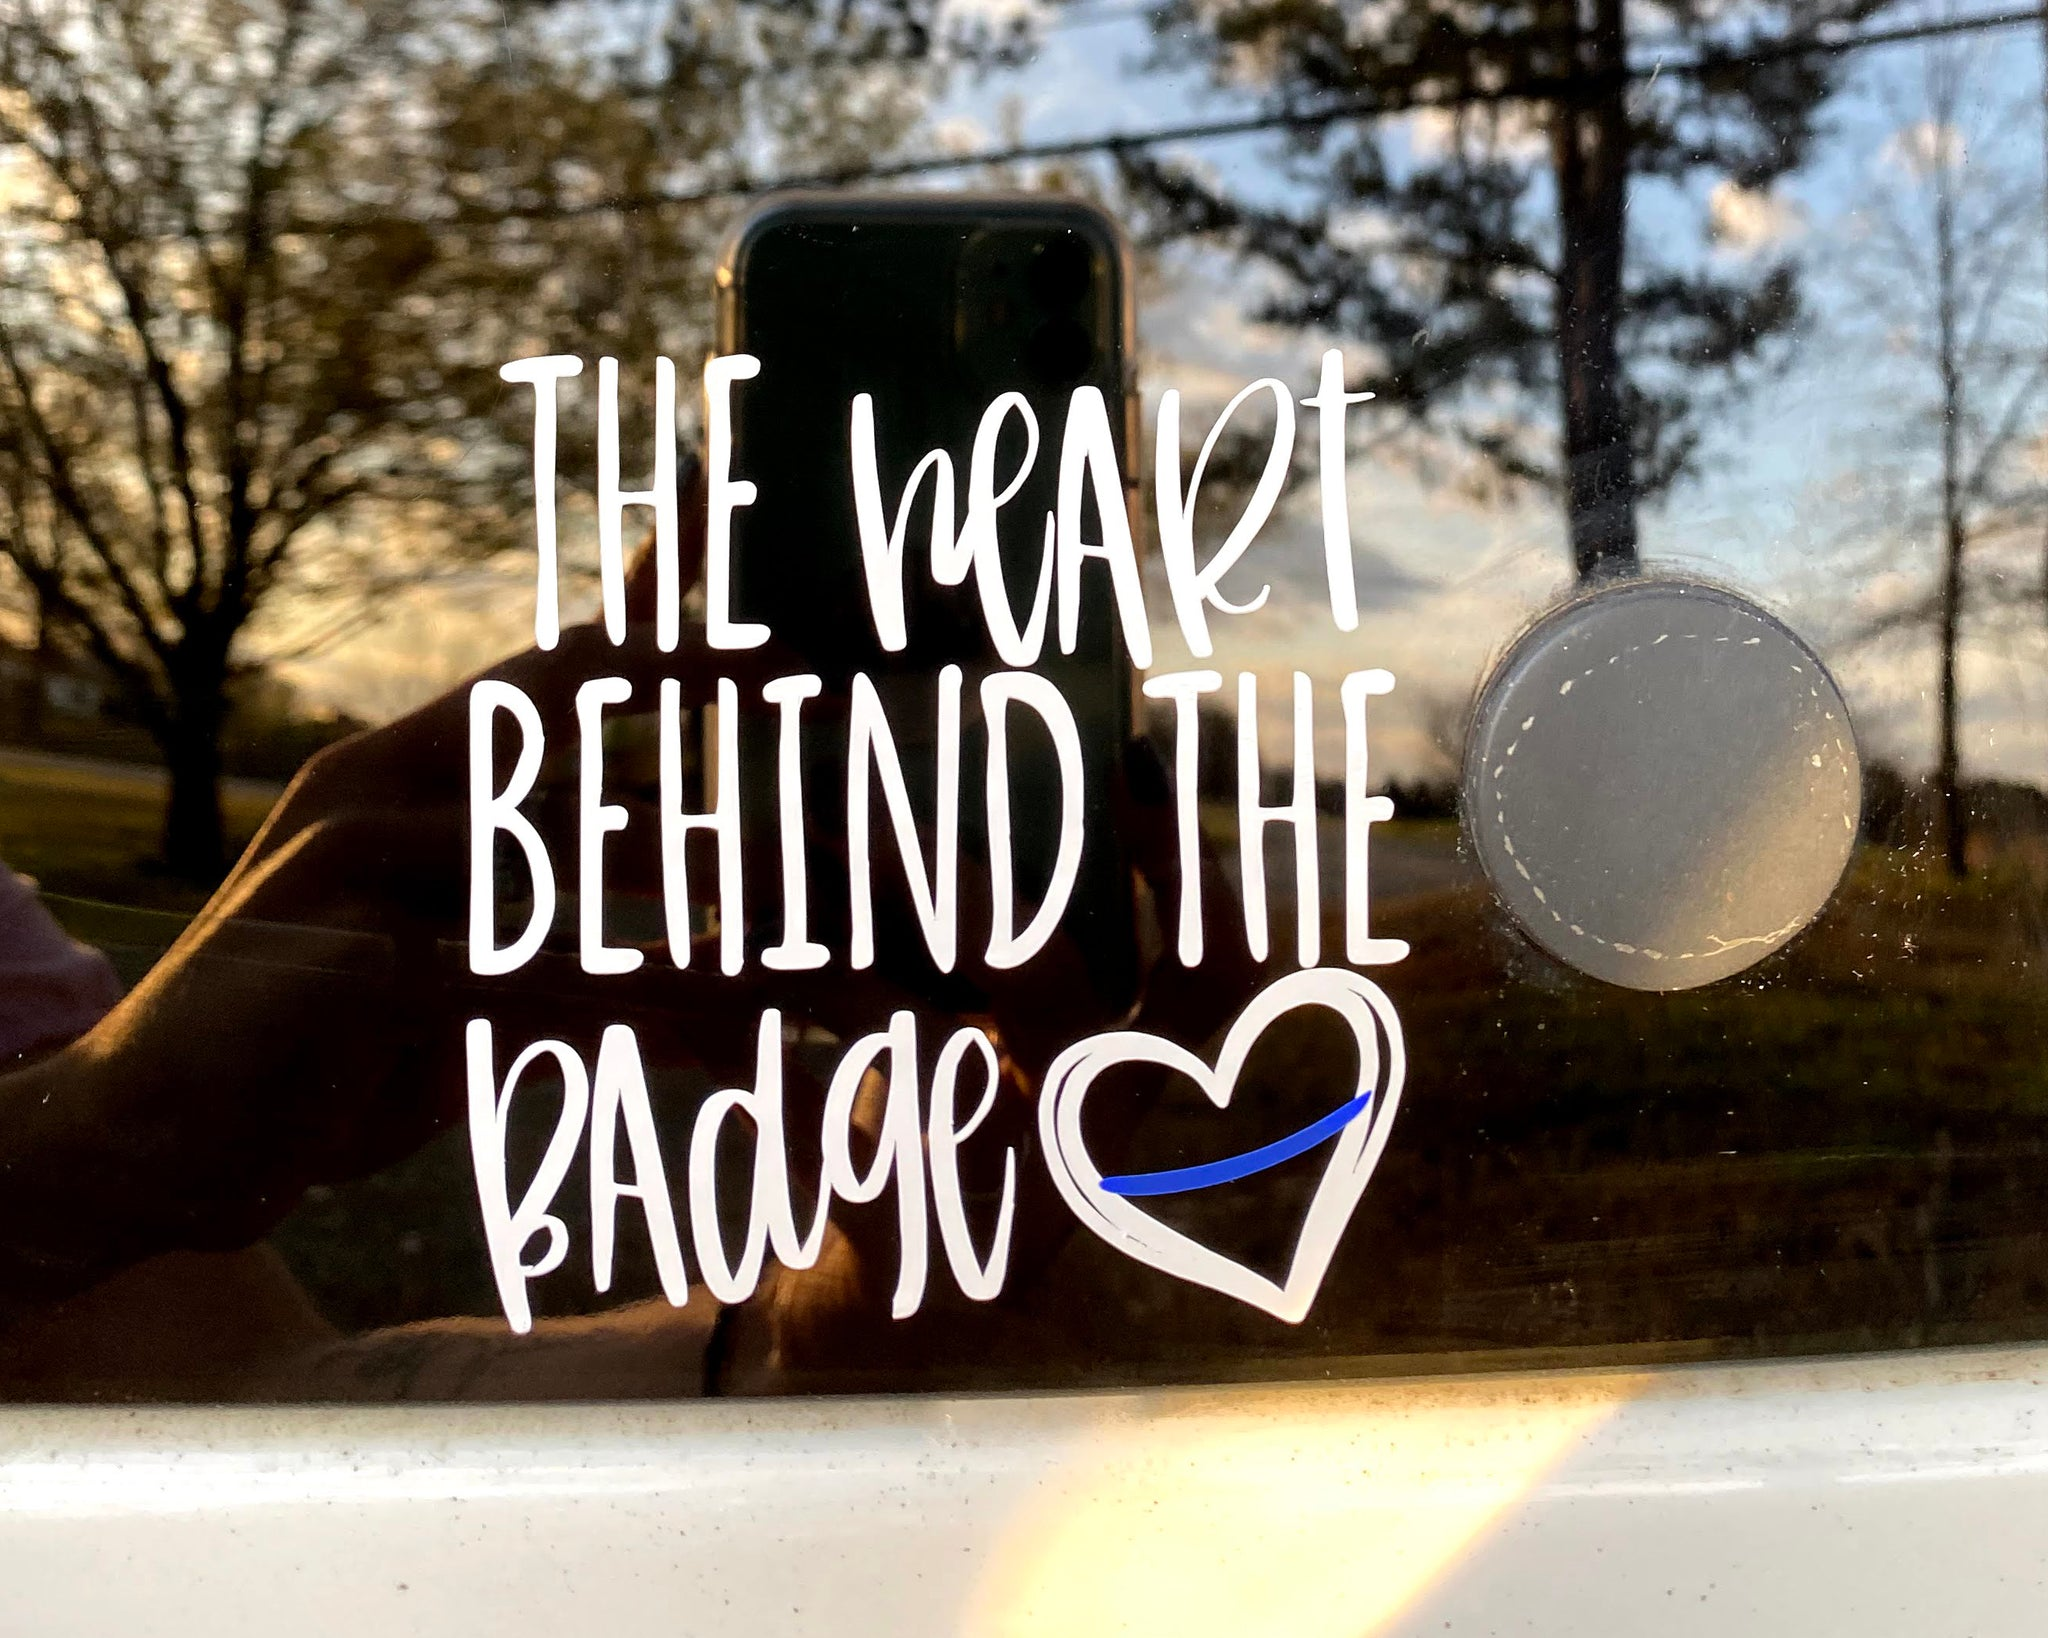 The Heart Behind the Badge - Decal